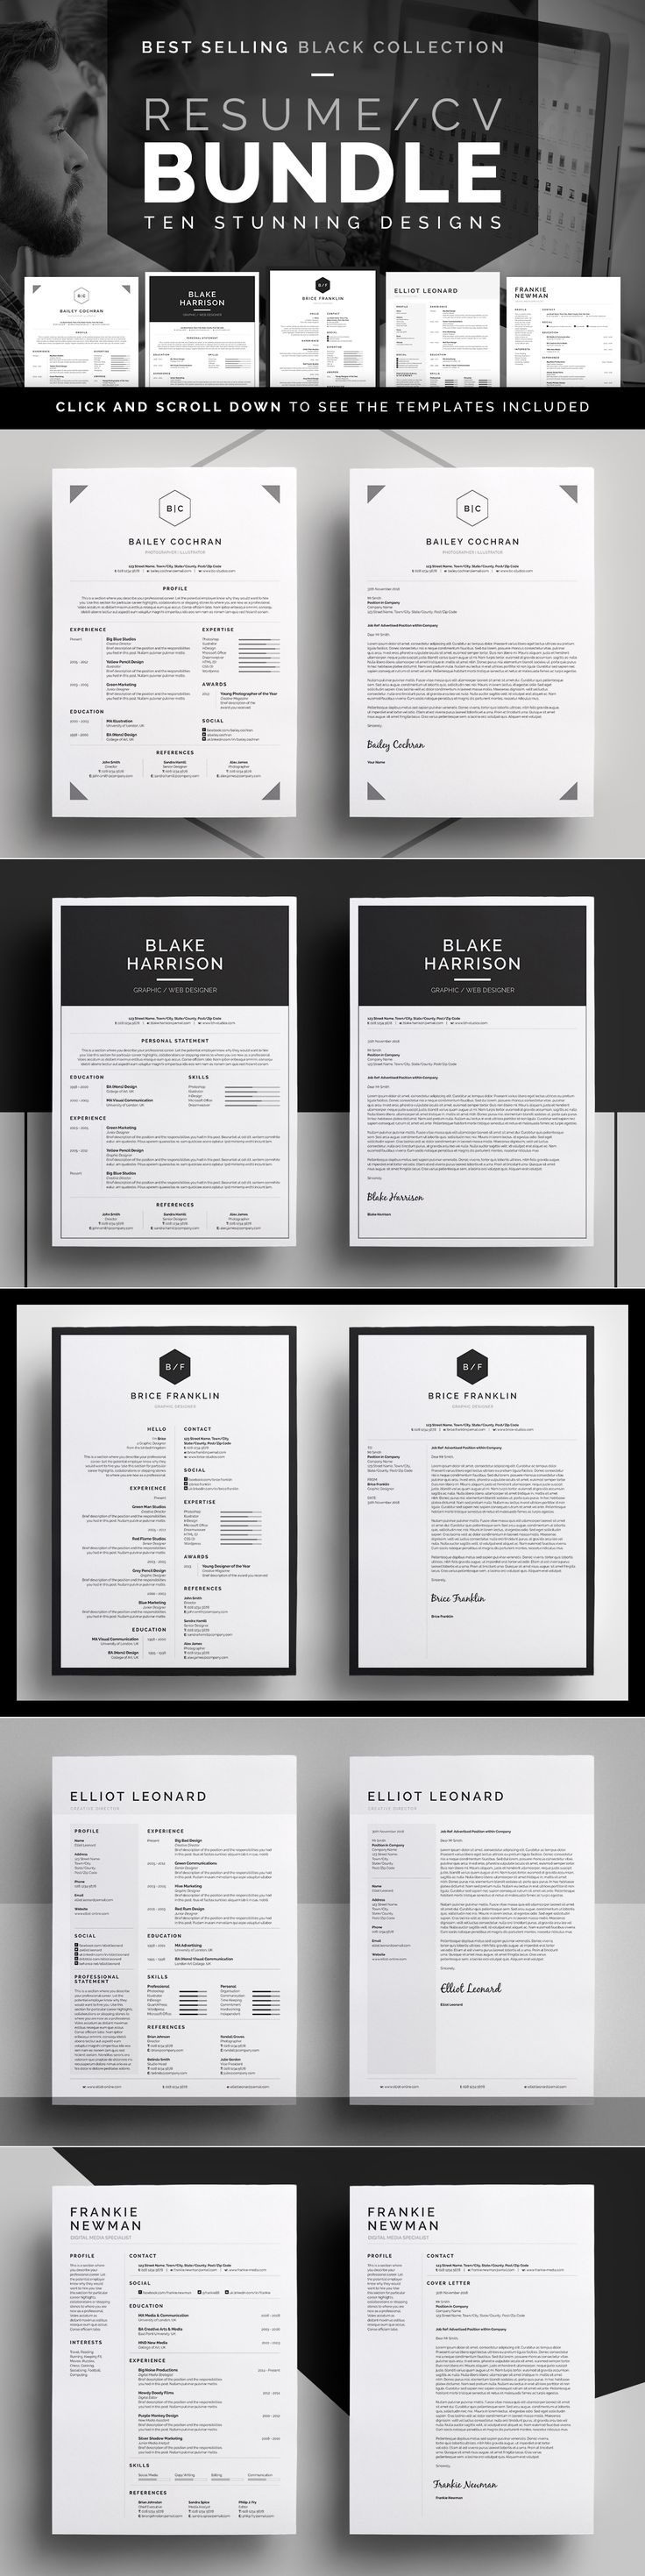 Best C V Images On   Resume Templates Cv Template